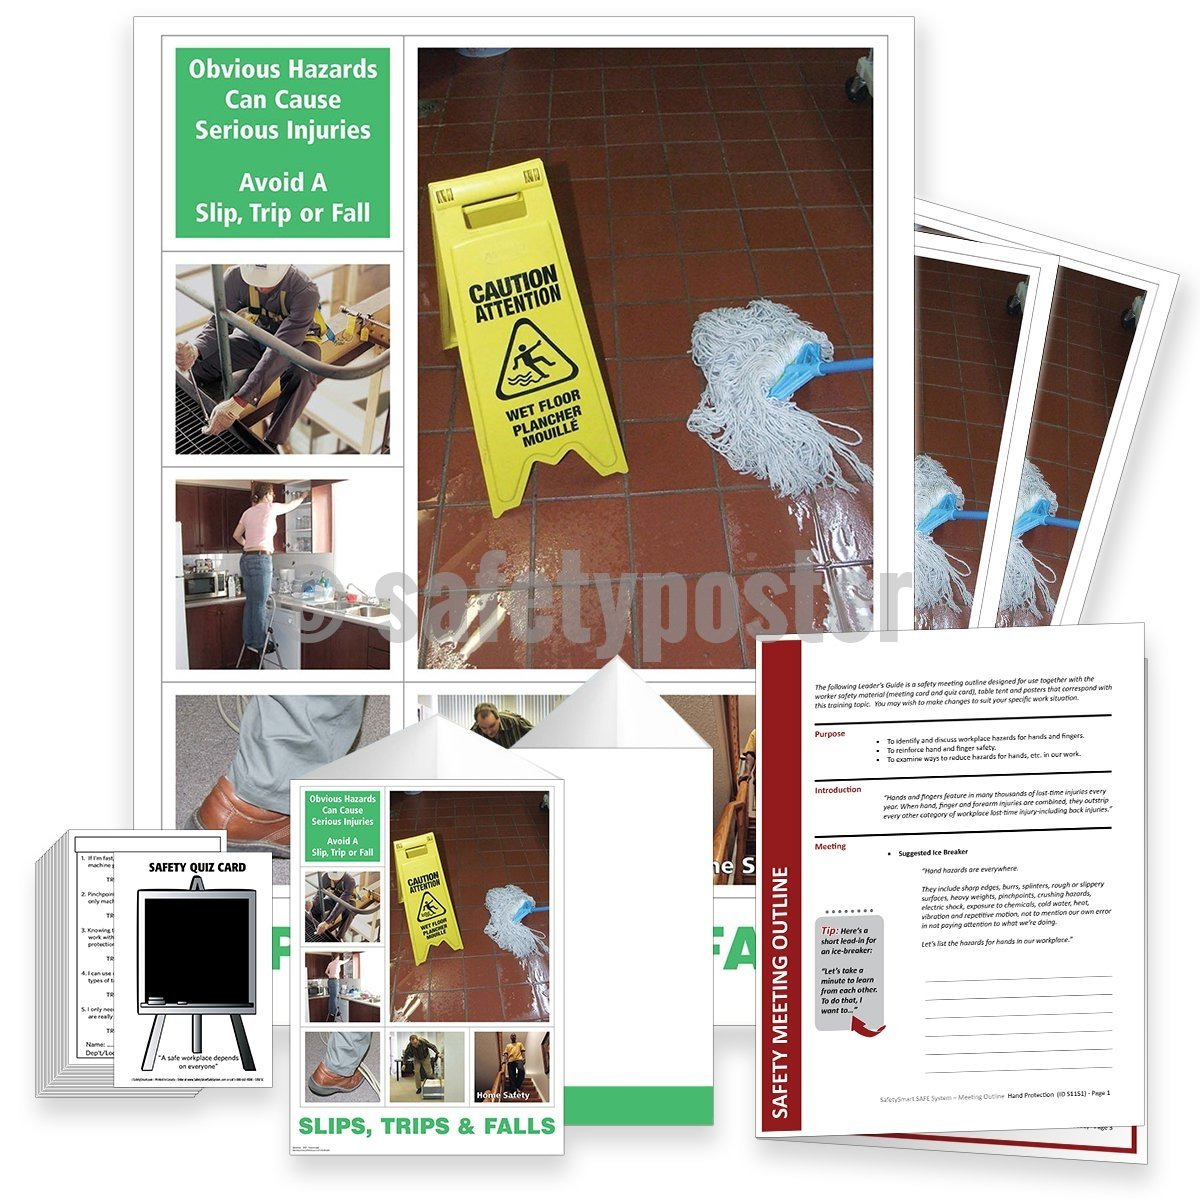 Safety Meeting Kit - Obvious Hazards Can Cause Serious Injury Kits